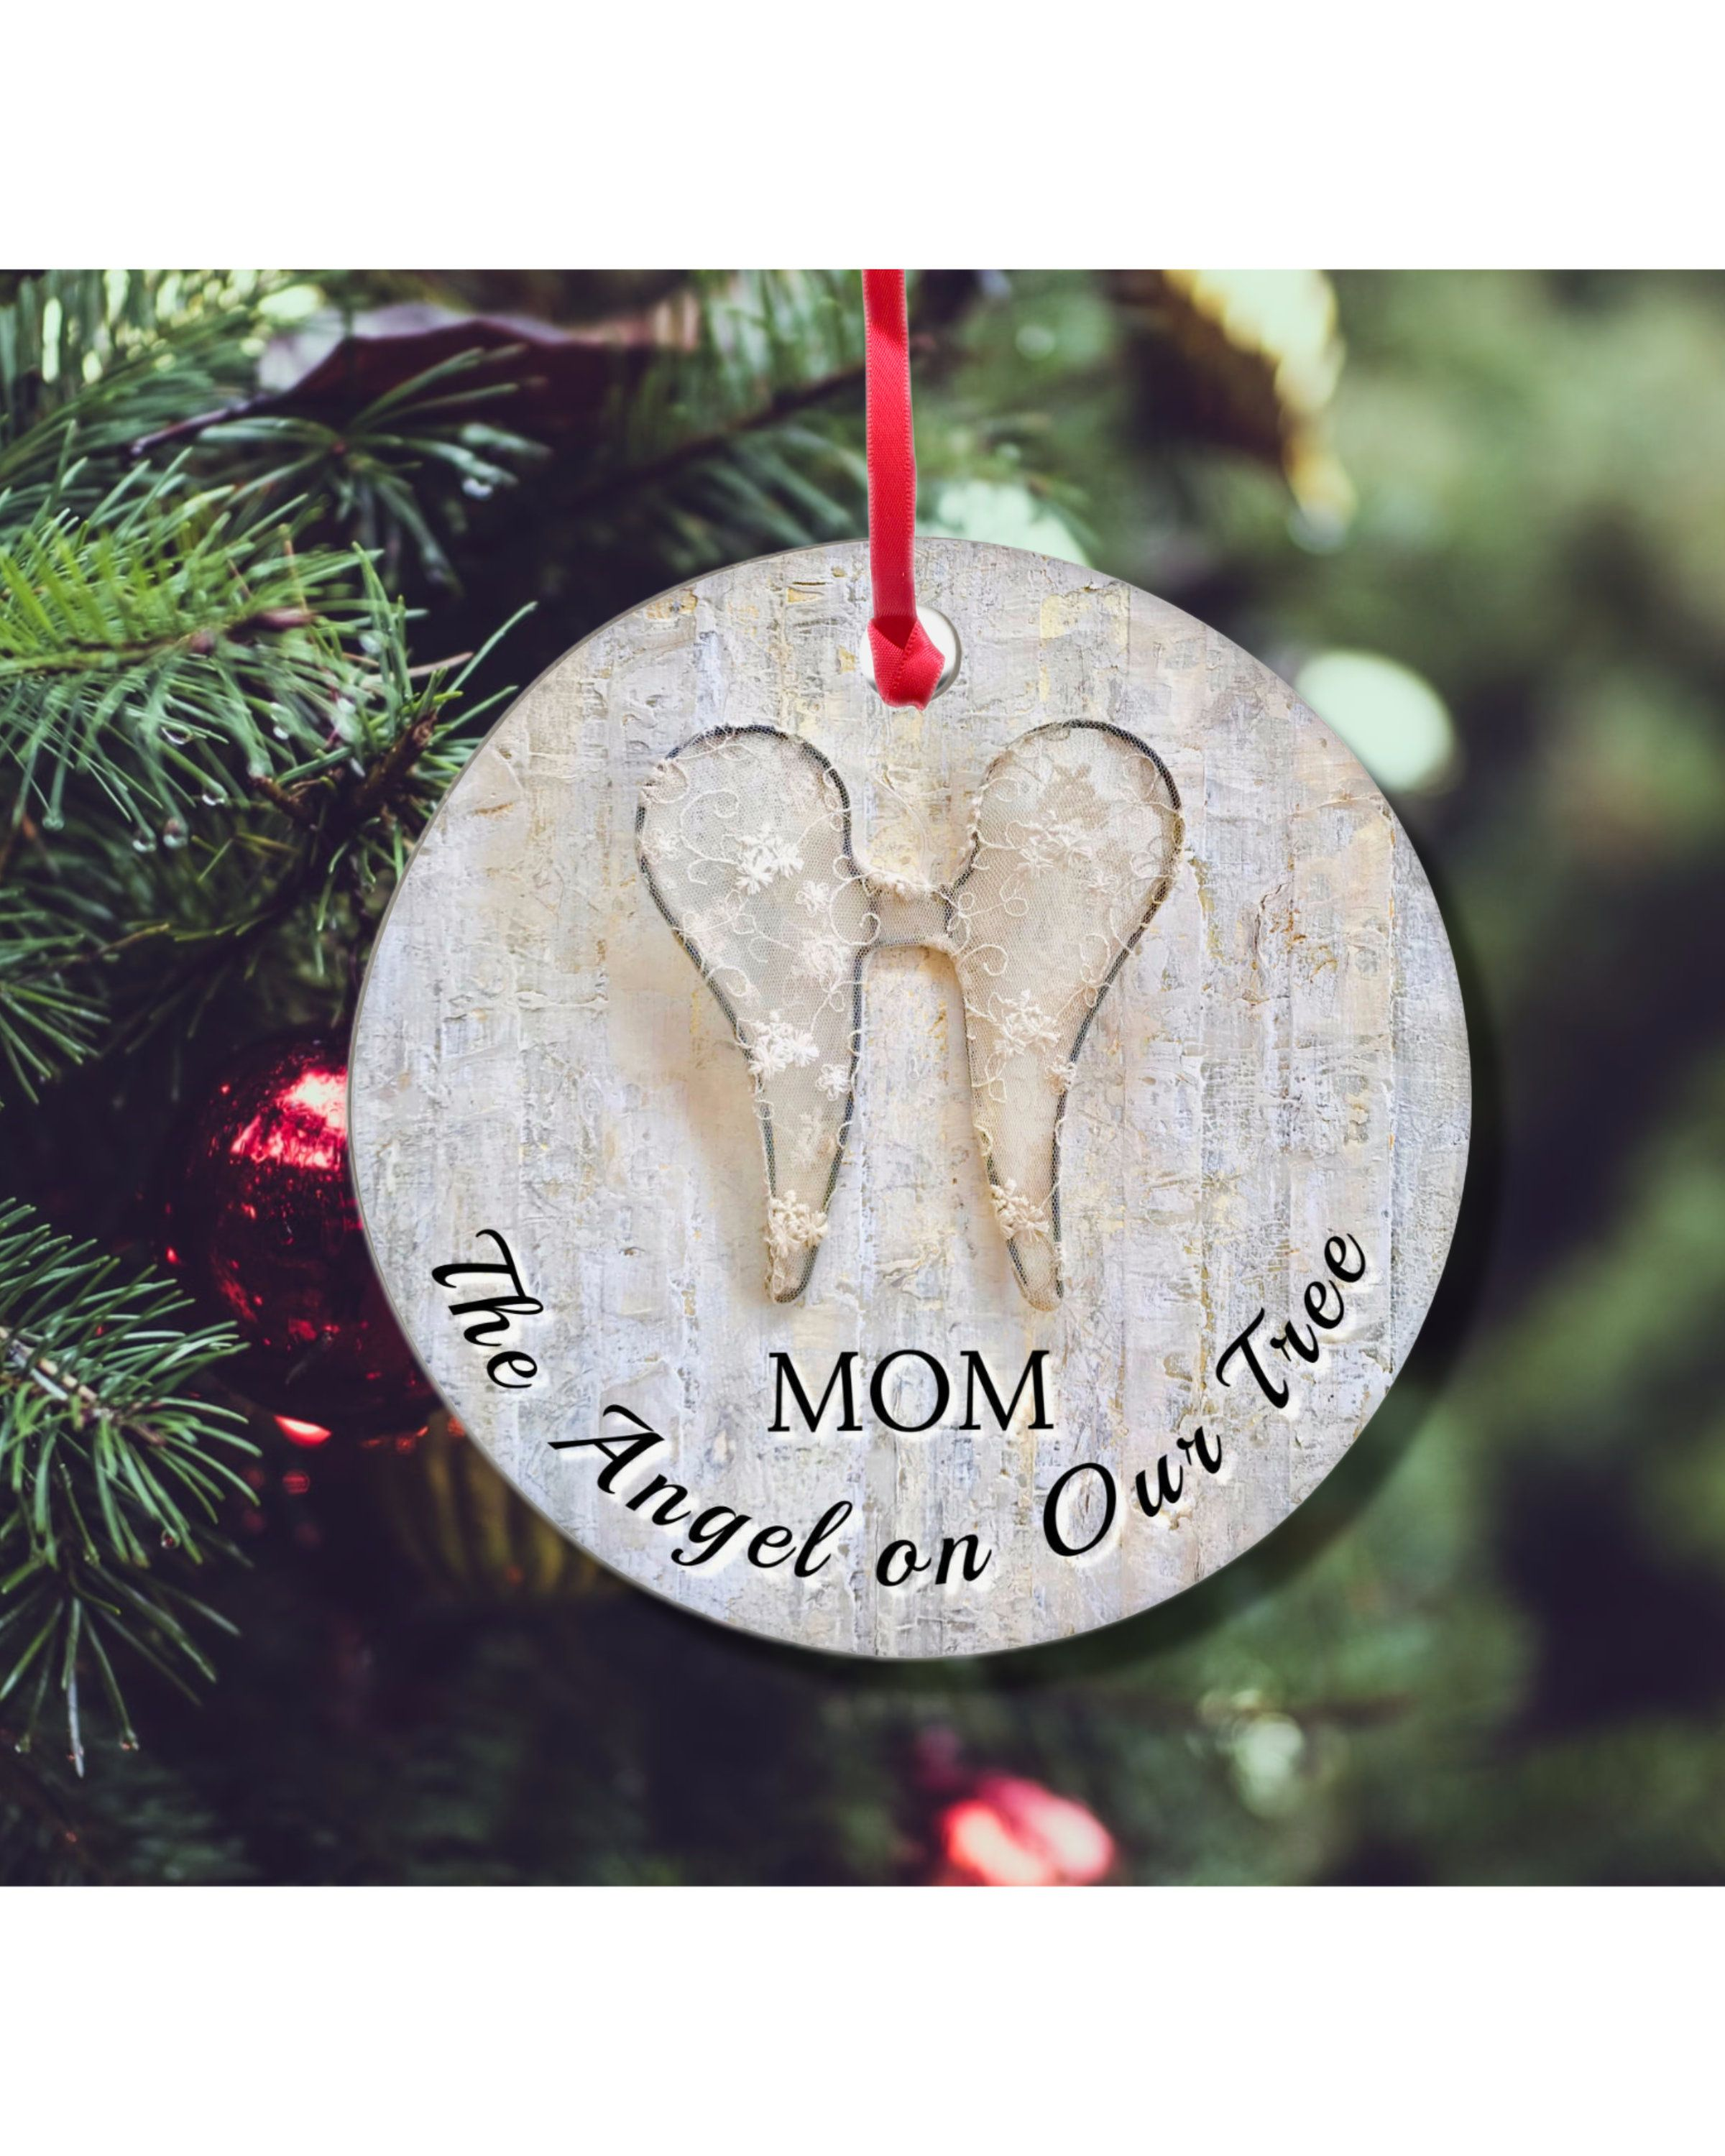 Memory Christmas Ornament Memorial Ornaments Personalized Remembrance Ornament By Resteasychil Memorial Christmas Gift Memorial Ornaments Christmas Ornaments